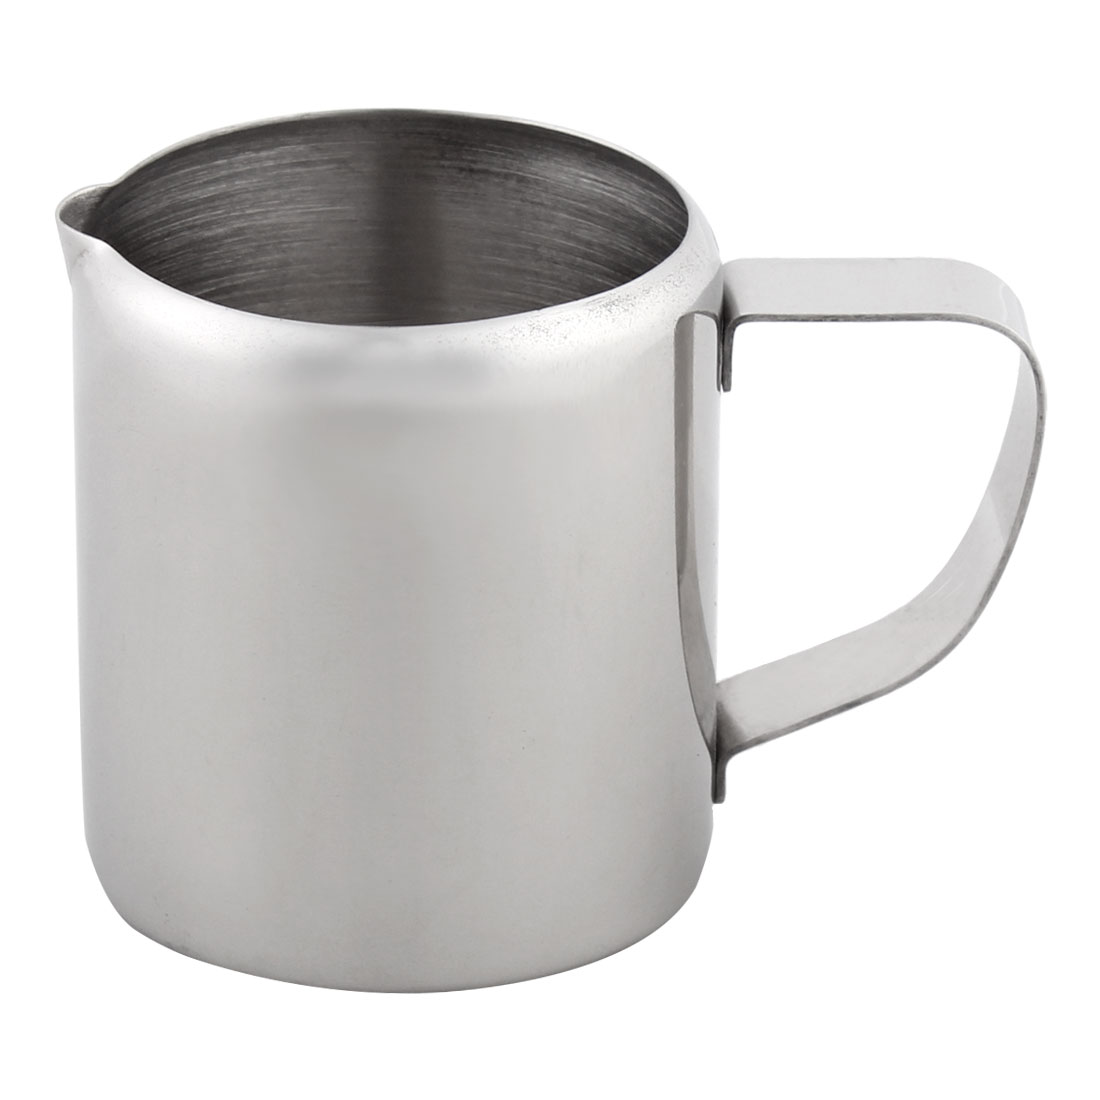 Kitchen Laboratory Stainless Steel Handle Water Liquid Measurement Cup Mug 3 Ounce